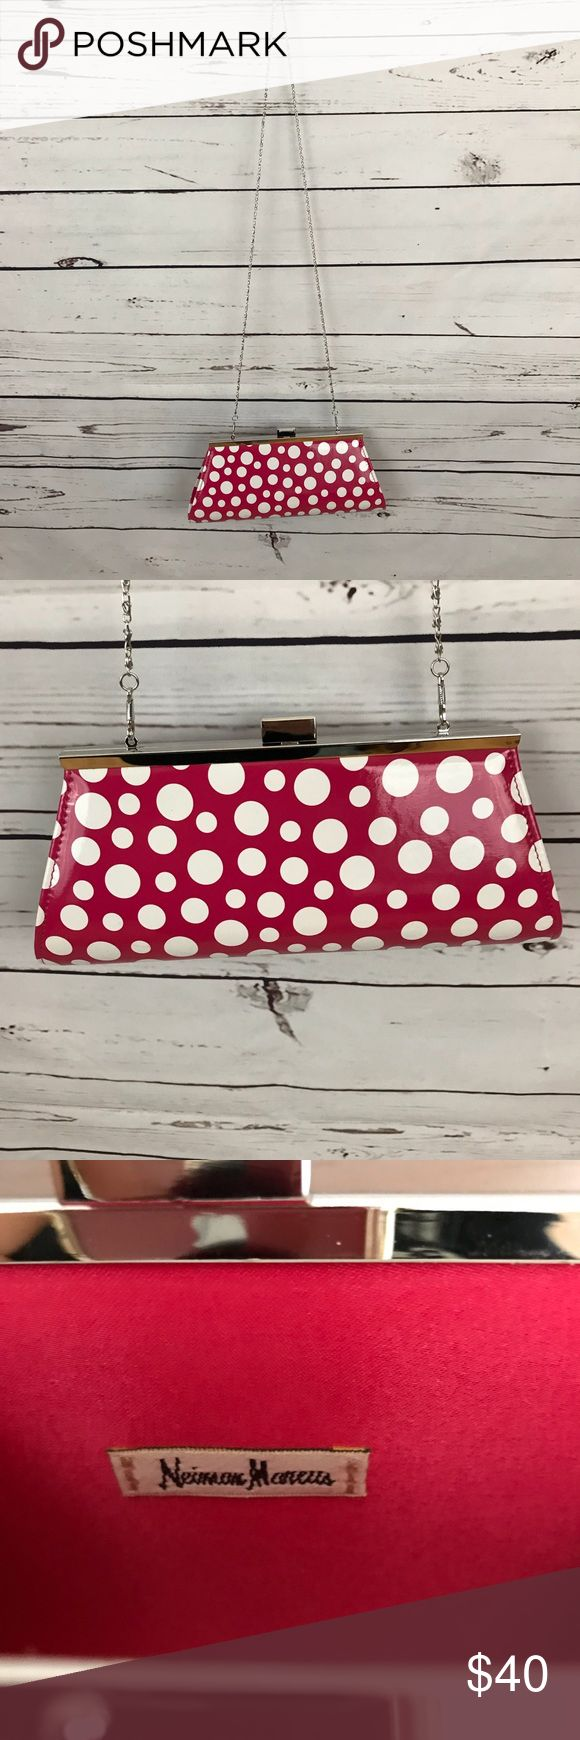 "Vintage Shoulder Bag Super cute polka dot bag! Chain strap can be removed and bag can be carried as a clutch. Strap 23"" from shoulder to bag. Bag: 8 1/2"" top, 11"" bottom. Neiman Marcus Bags Shoulder Bags"